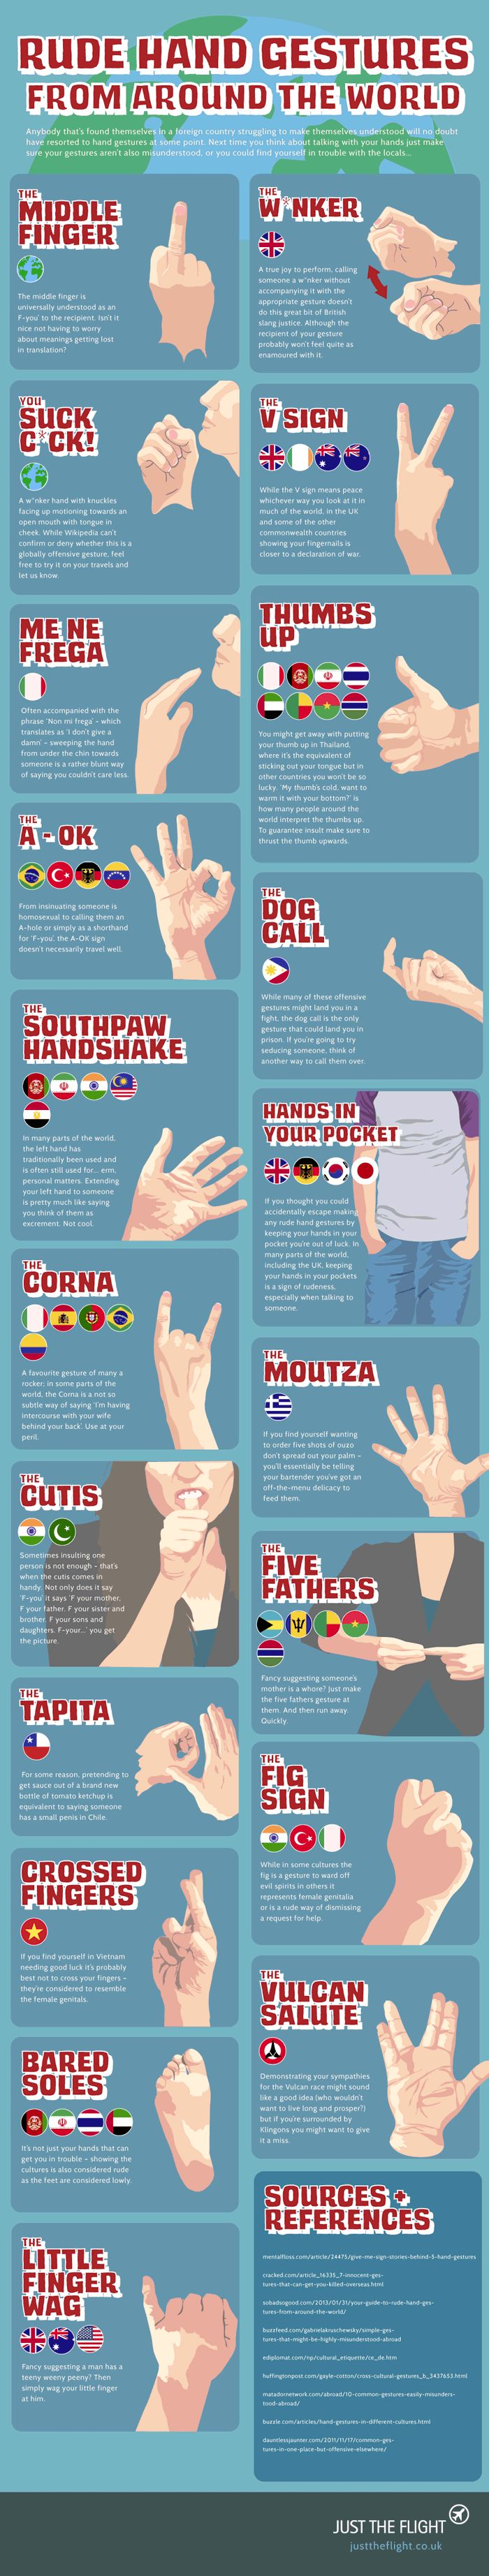 Rude Hand Gestures From Around the World #Infographic - Best Infographics